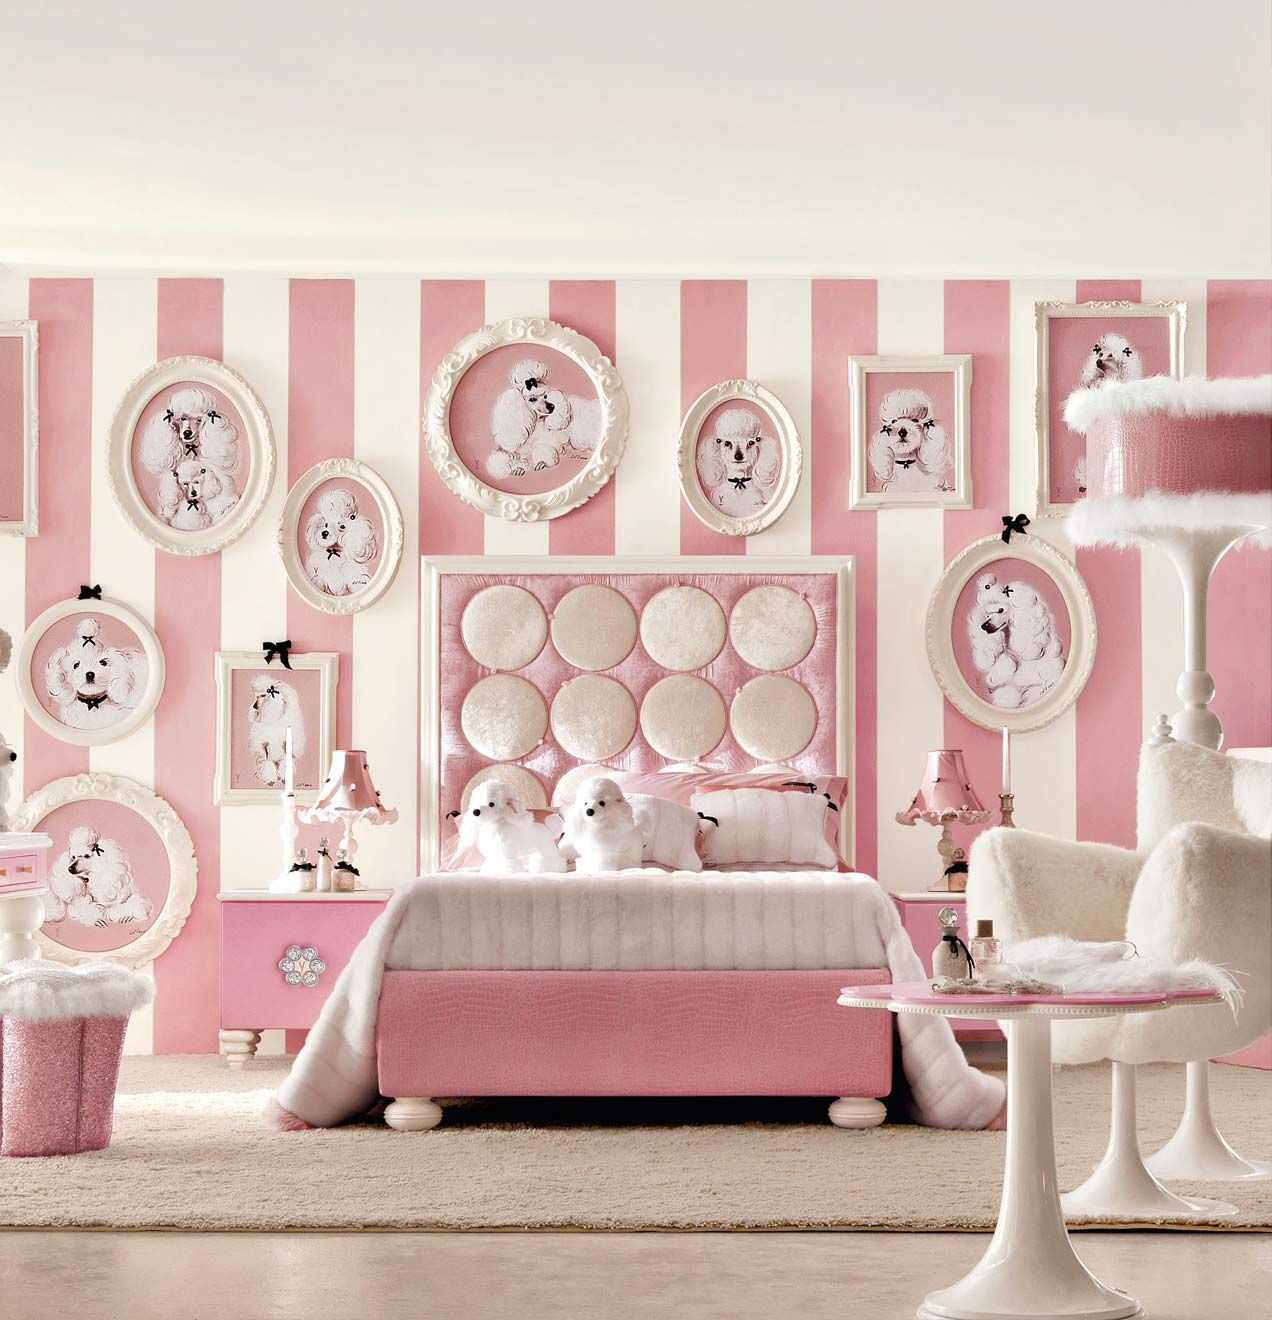 Cool bedroom wall designs for girls - Insanely Girly Girl Bedroom With Dogs White Pink Stripes Wall Cool Room Designs Not For